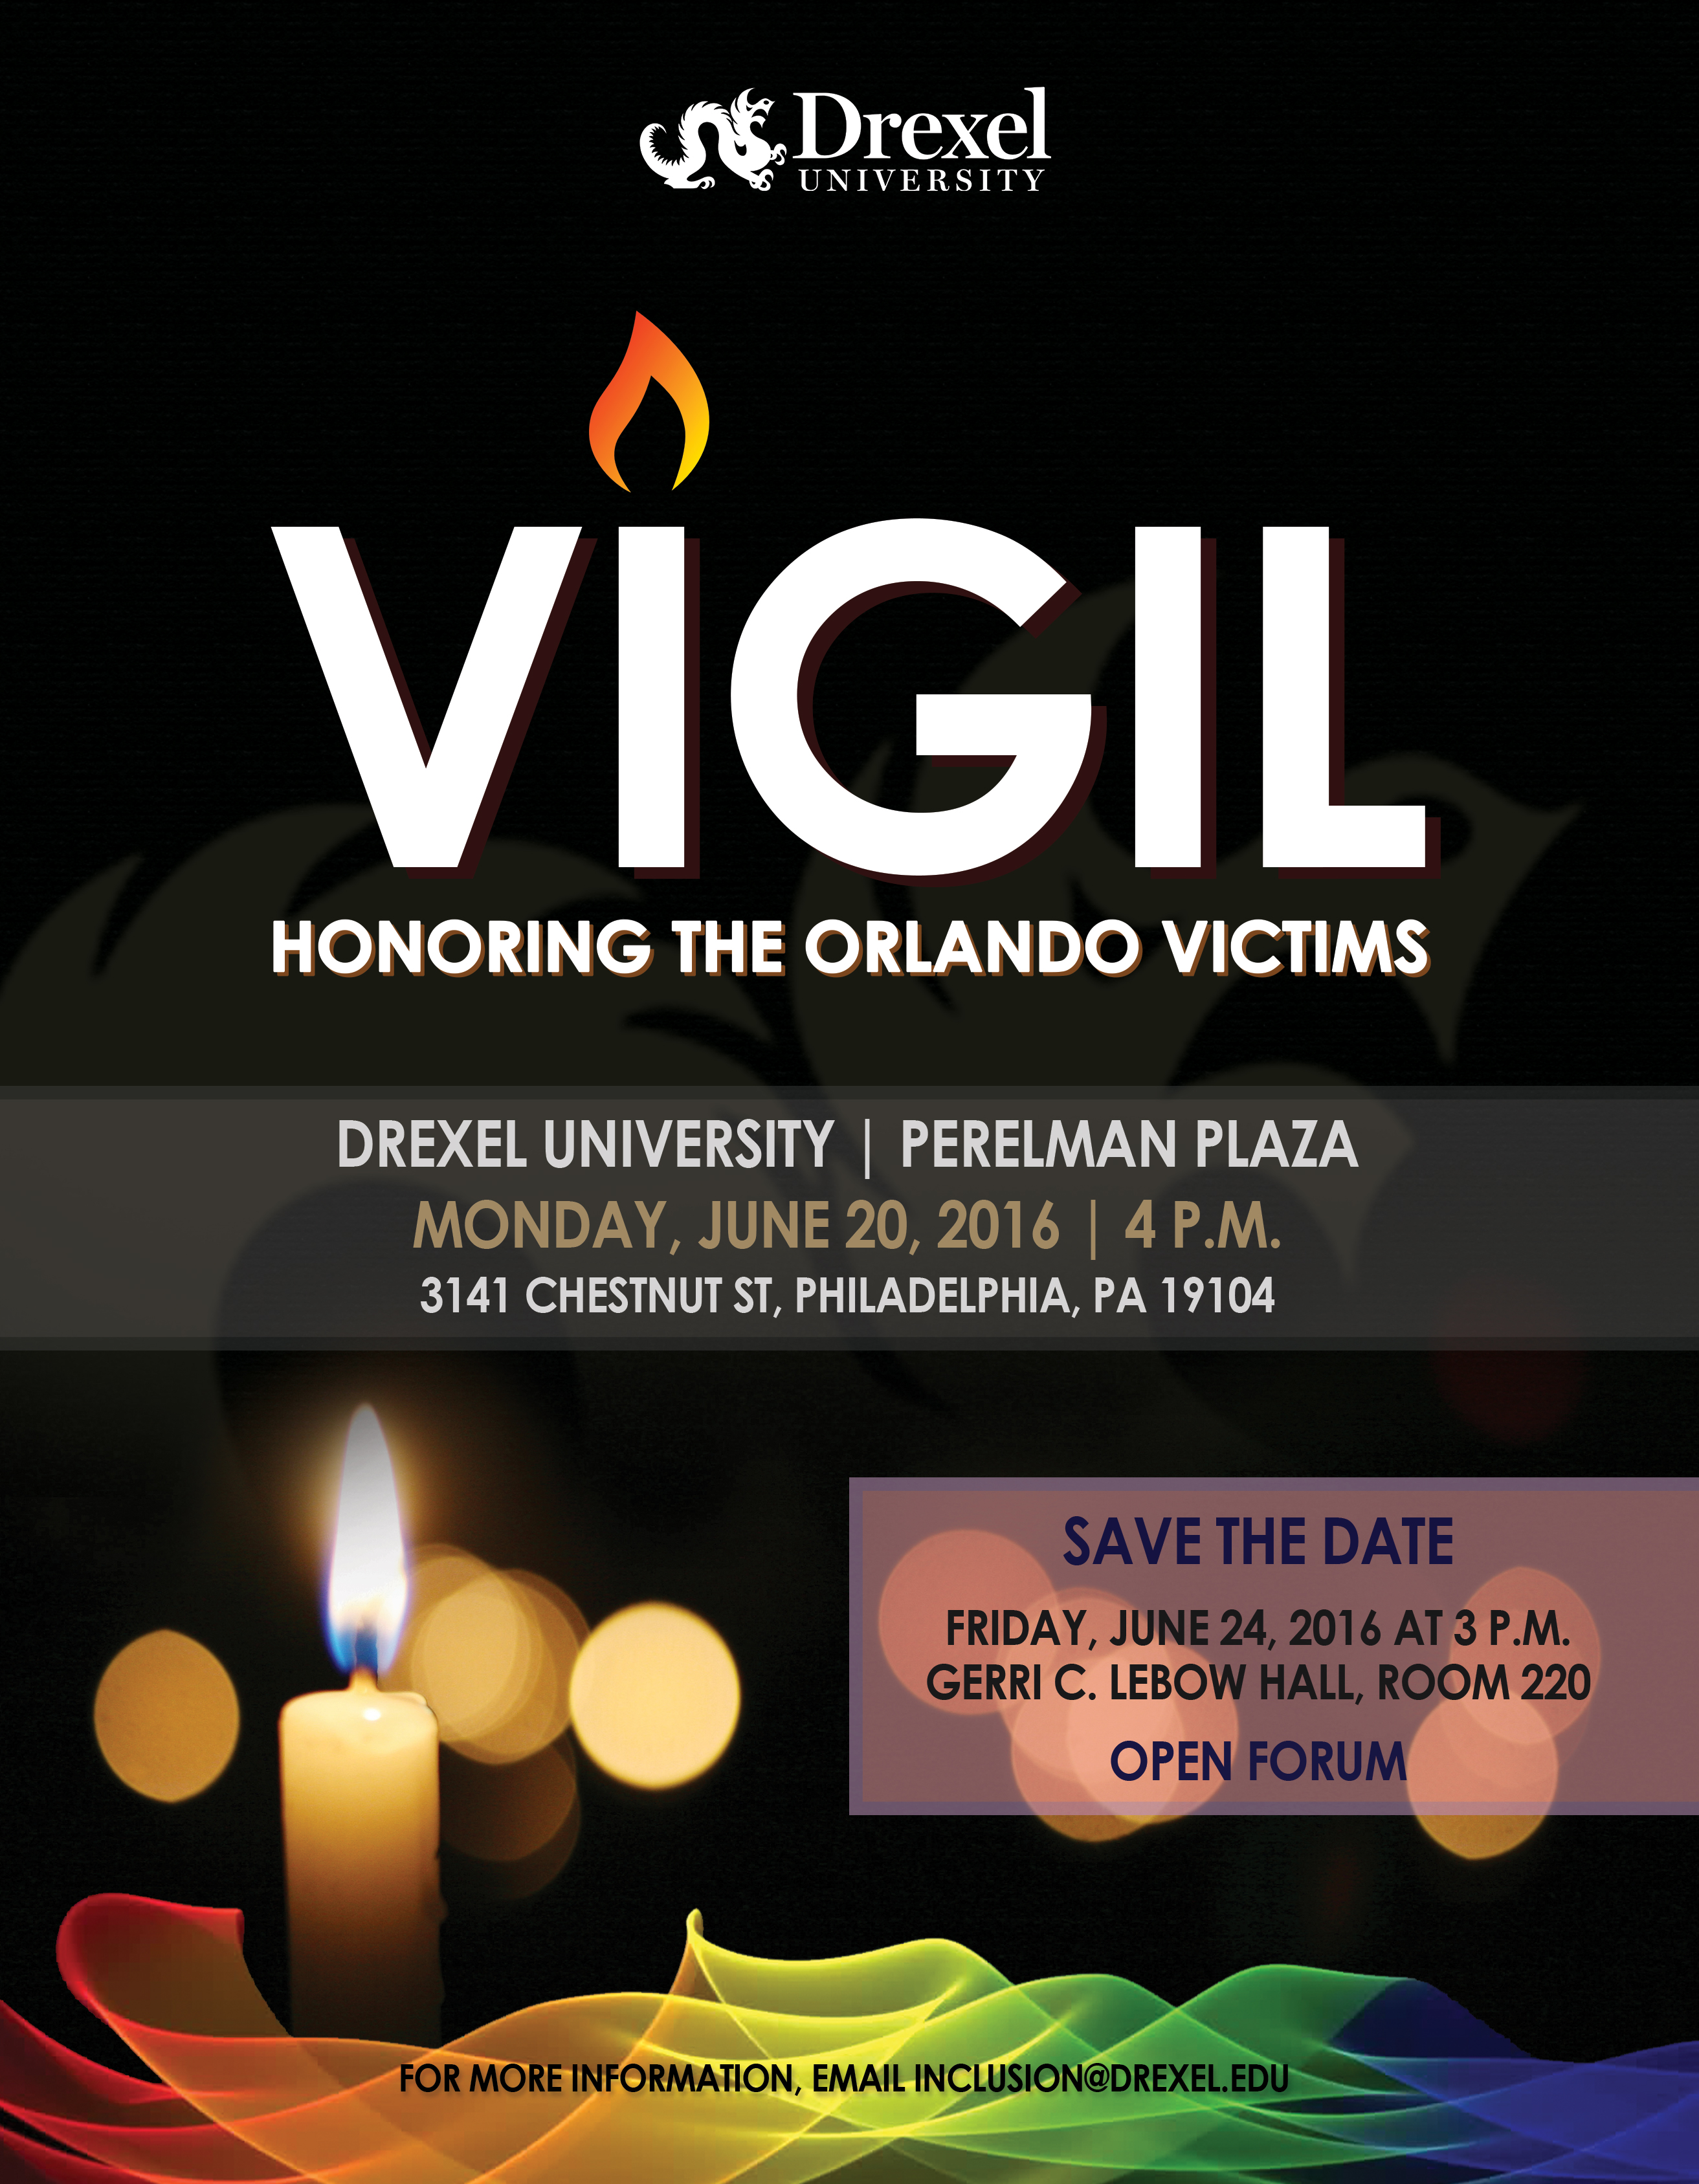 Flyer for a vigil for the orlando victims.